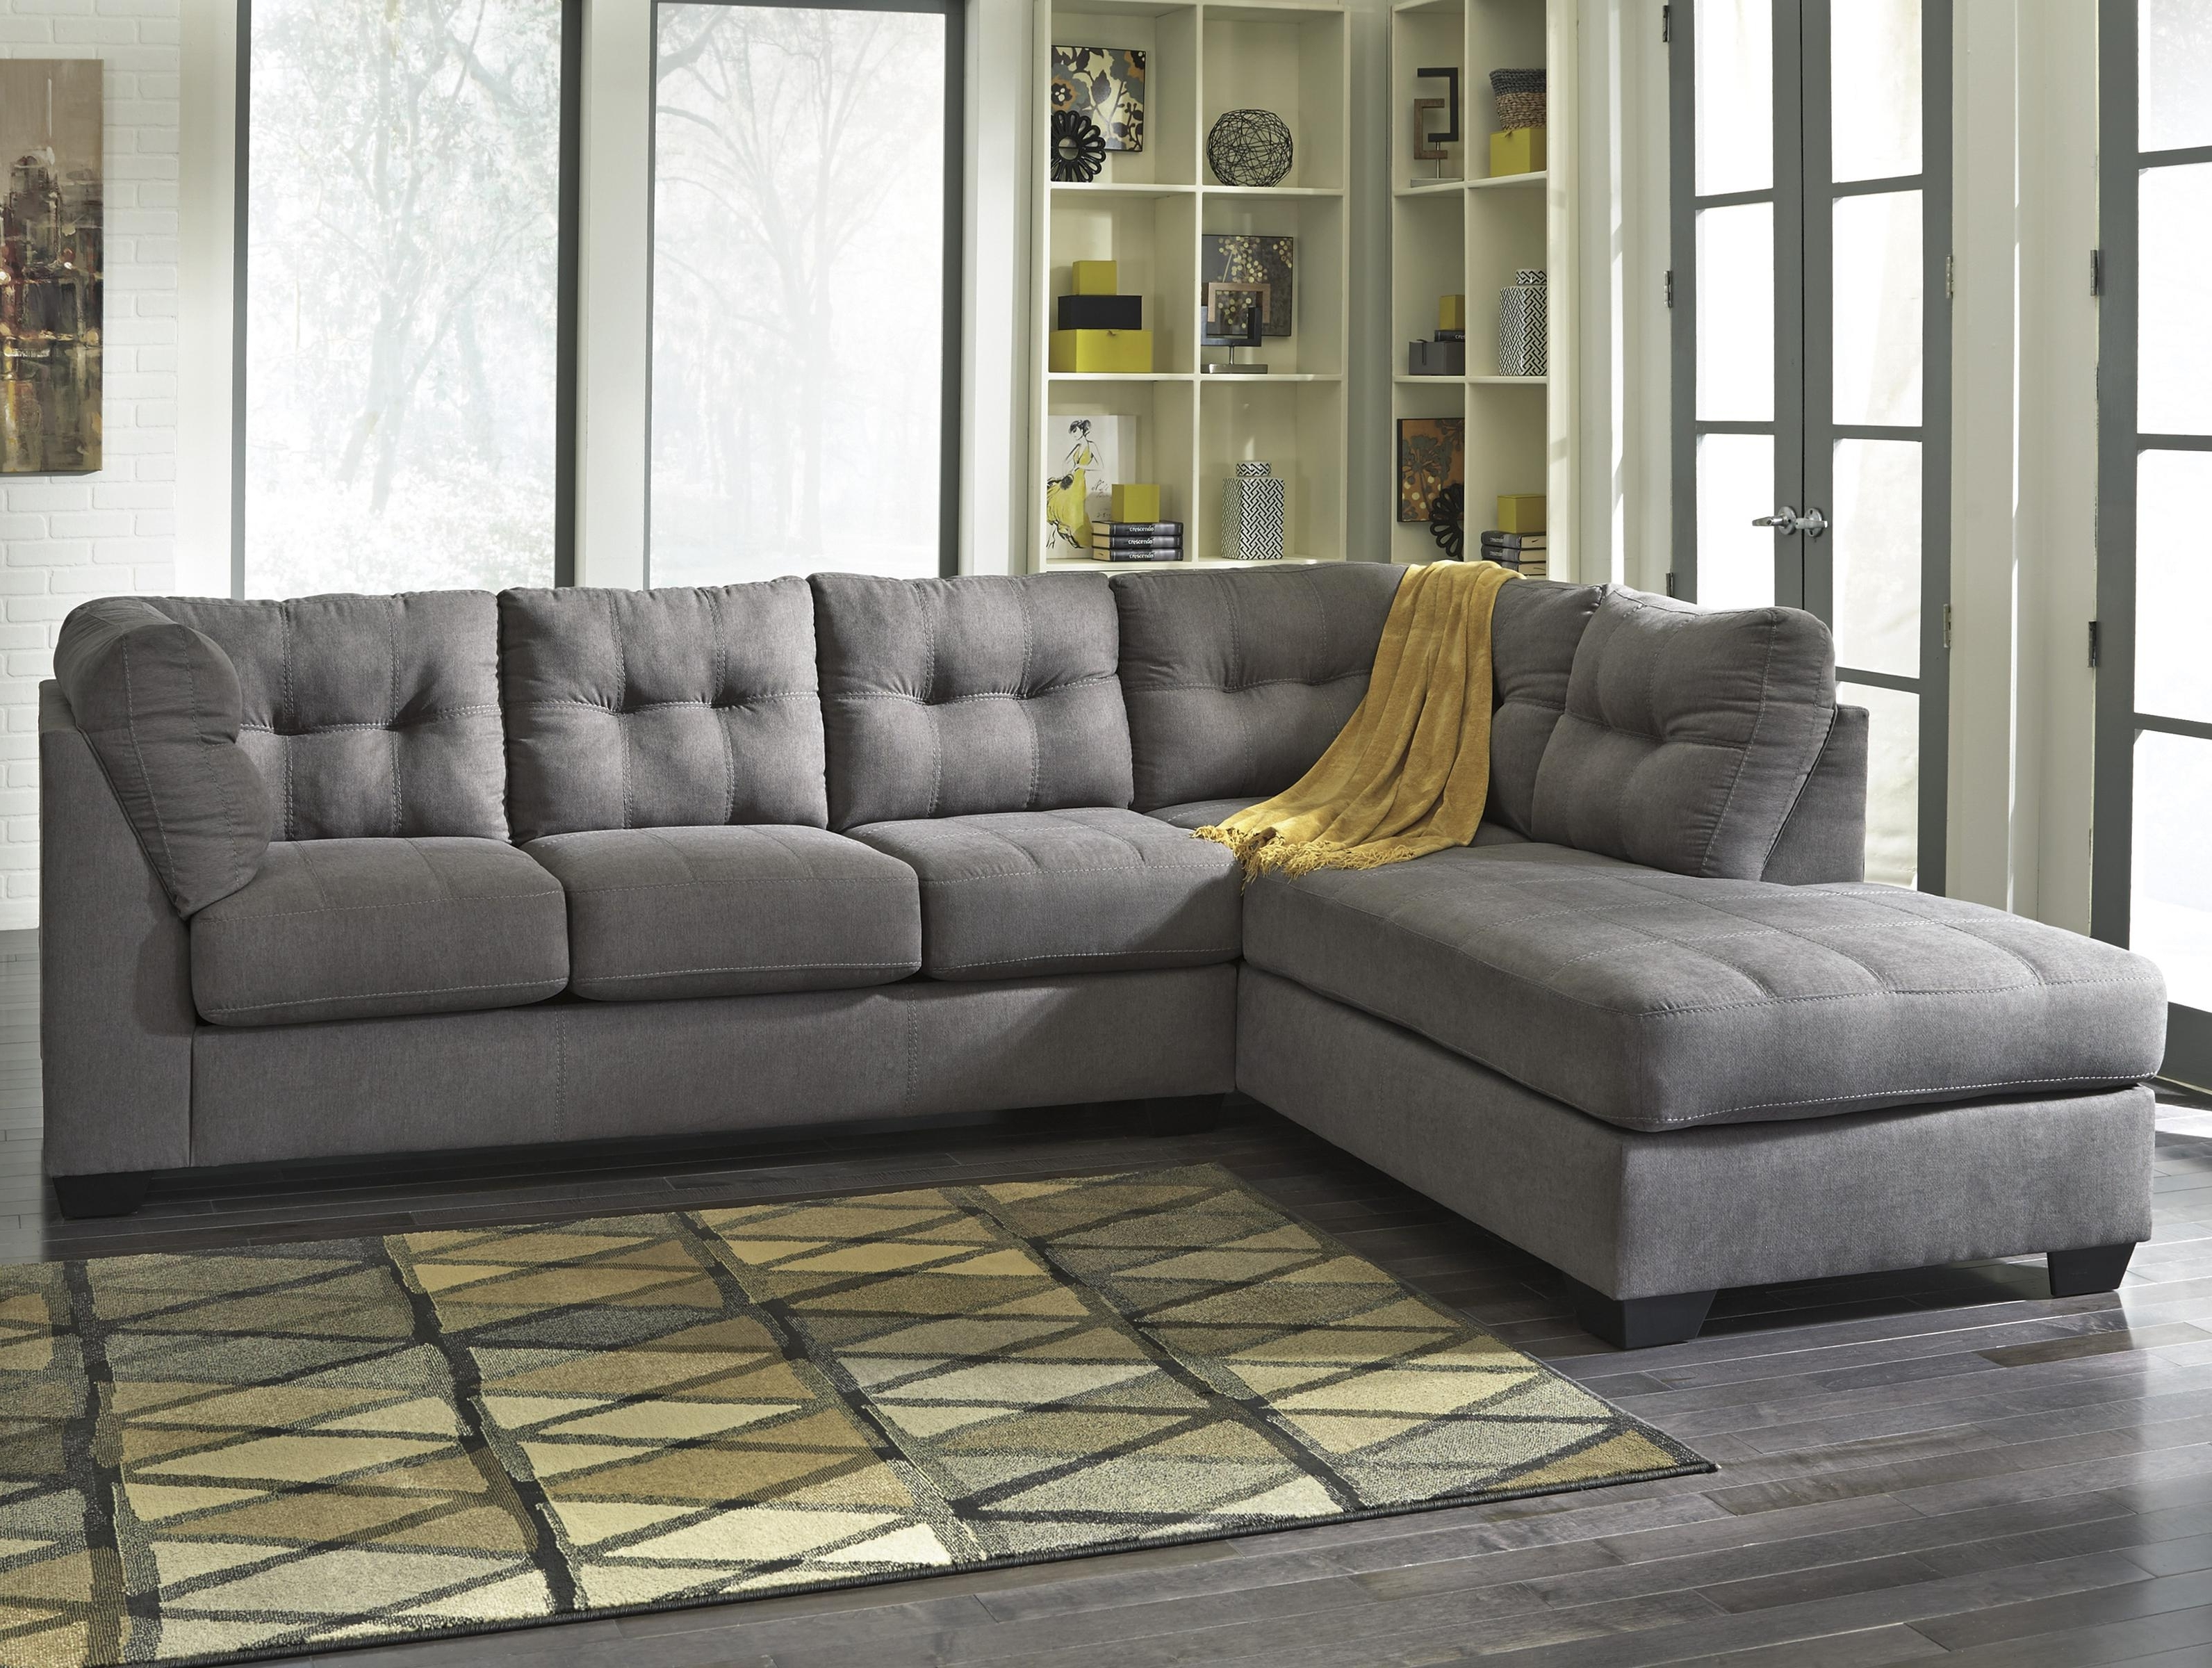 Benchcraftashley Maier – Charcoal 2 Piece Sectional With Left Regarding Most Up To Date Nashville Sectional Sofas (View 1 of 20)